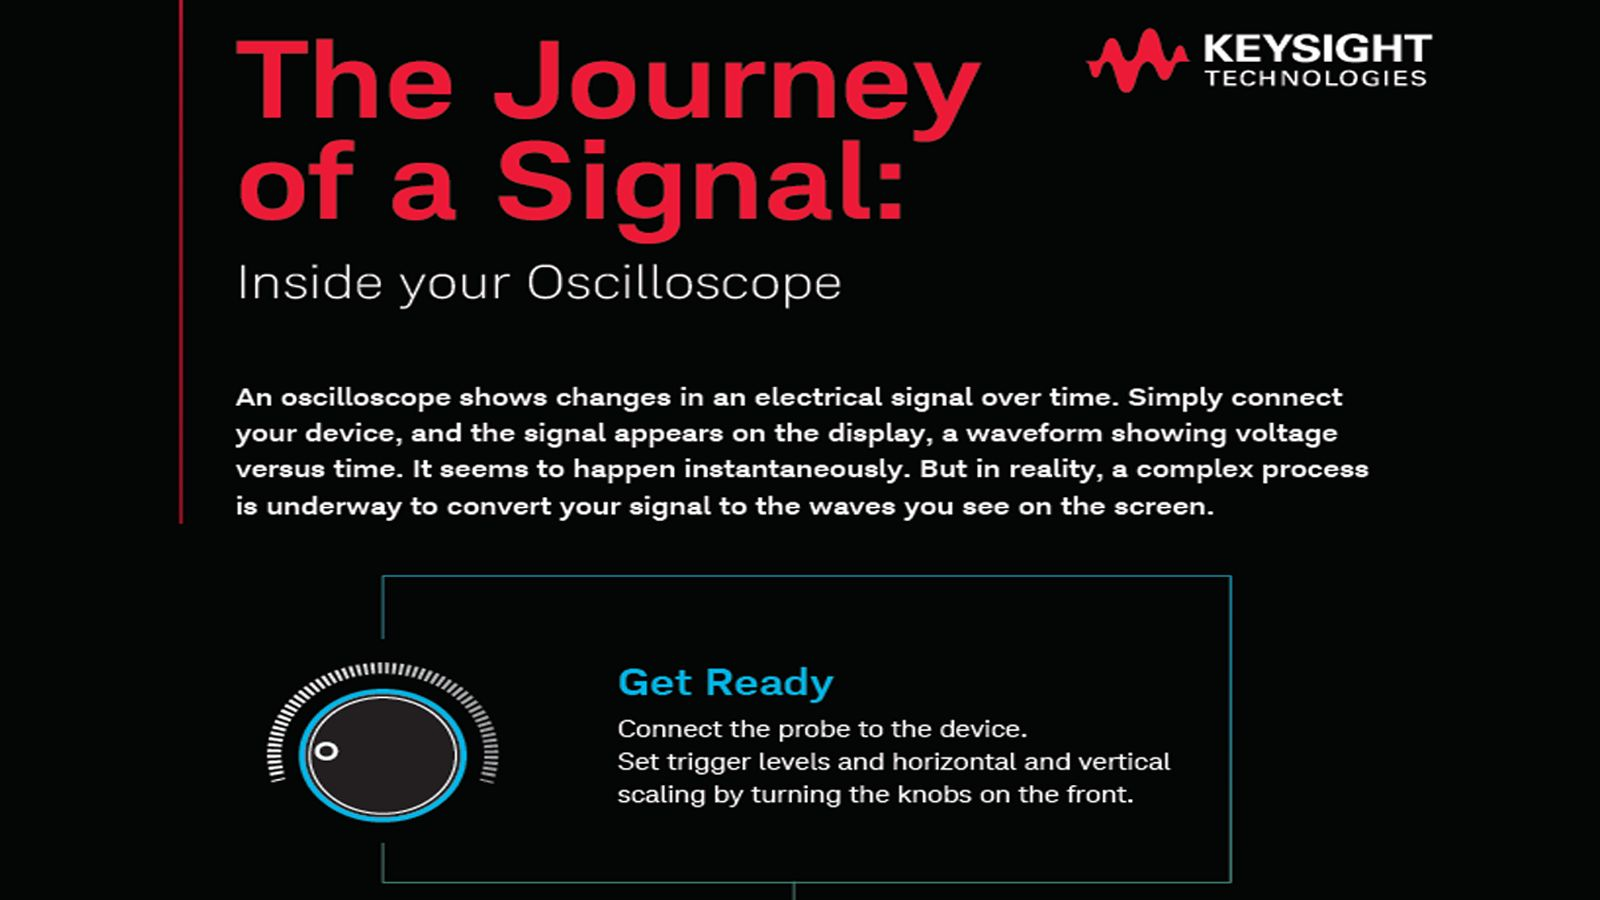 The Journey of a Signal: Inside your Oscilloscope